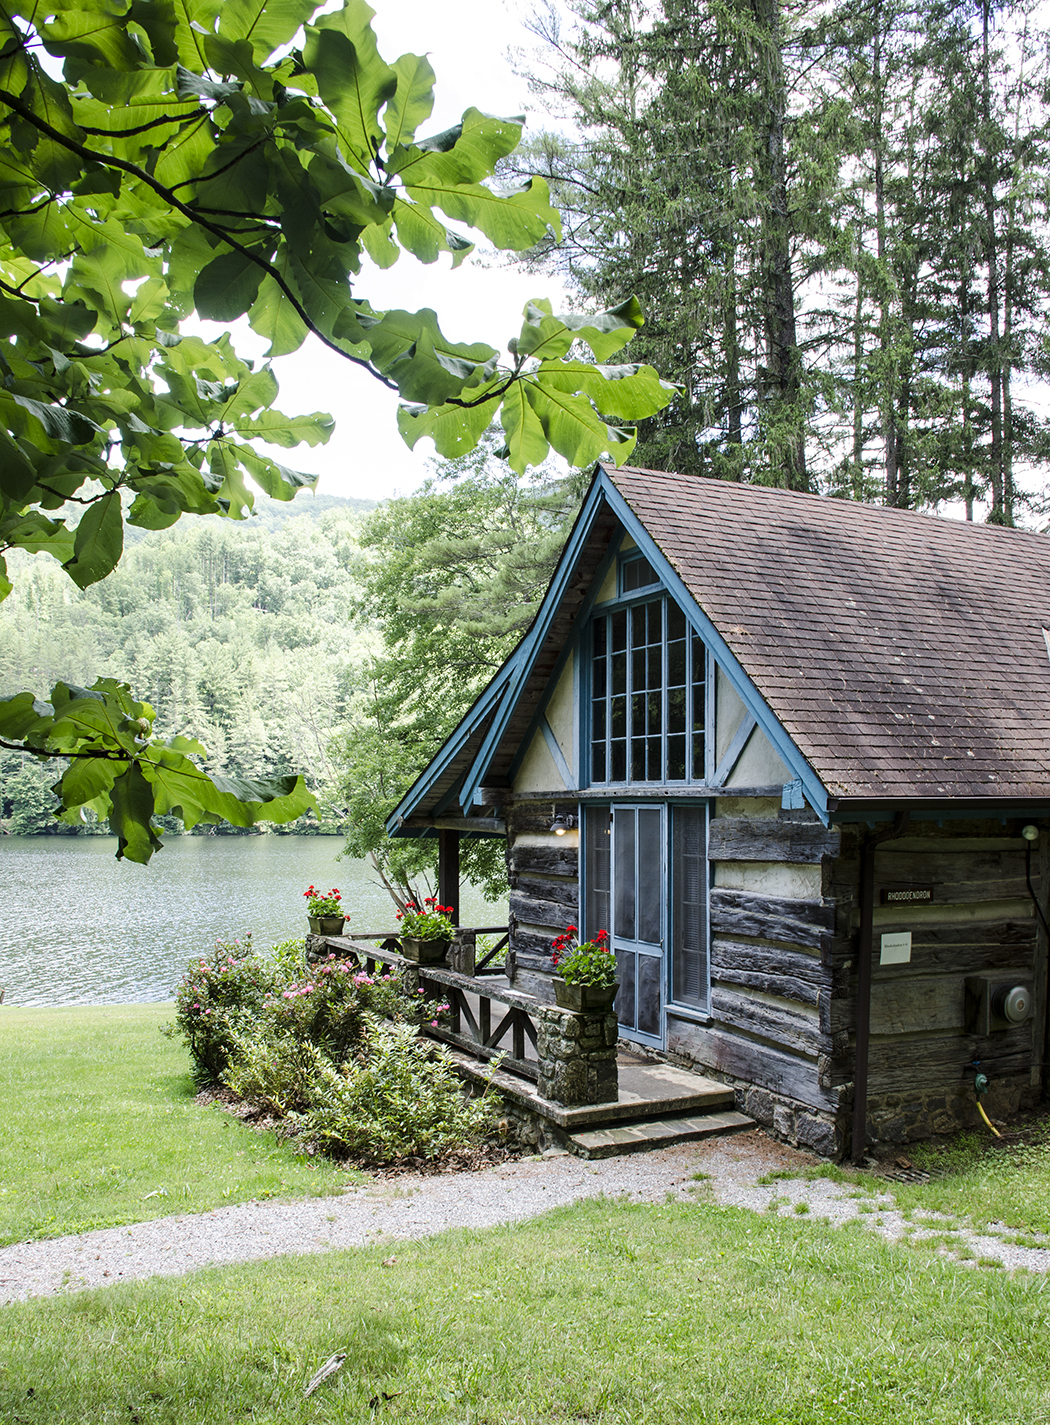 Rhododendron Cabin